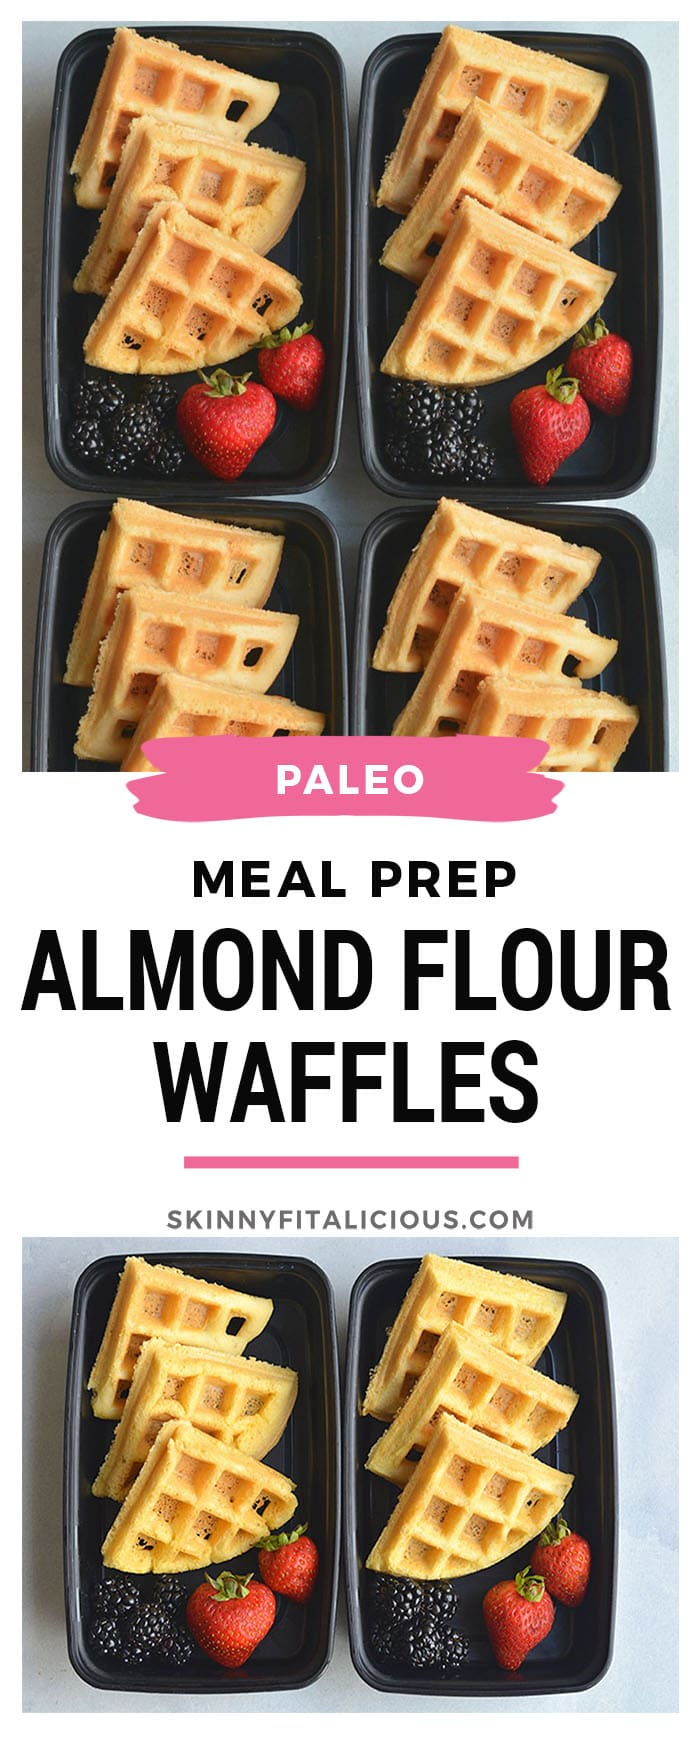 Meal Prep Almond Flour Waffles are a breeze to make and rich in protein. Easy to make light and fluffy with a few healthy, dairy free ingredients. Great for an easy breakfast meal prep and freezable too! Paleo + Gluten Free